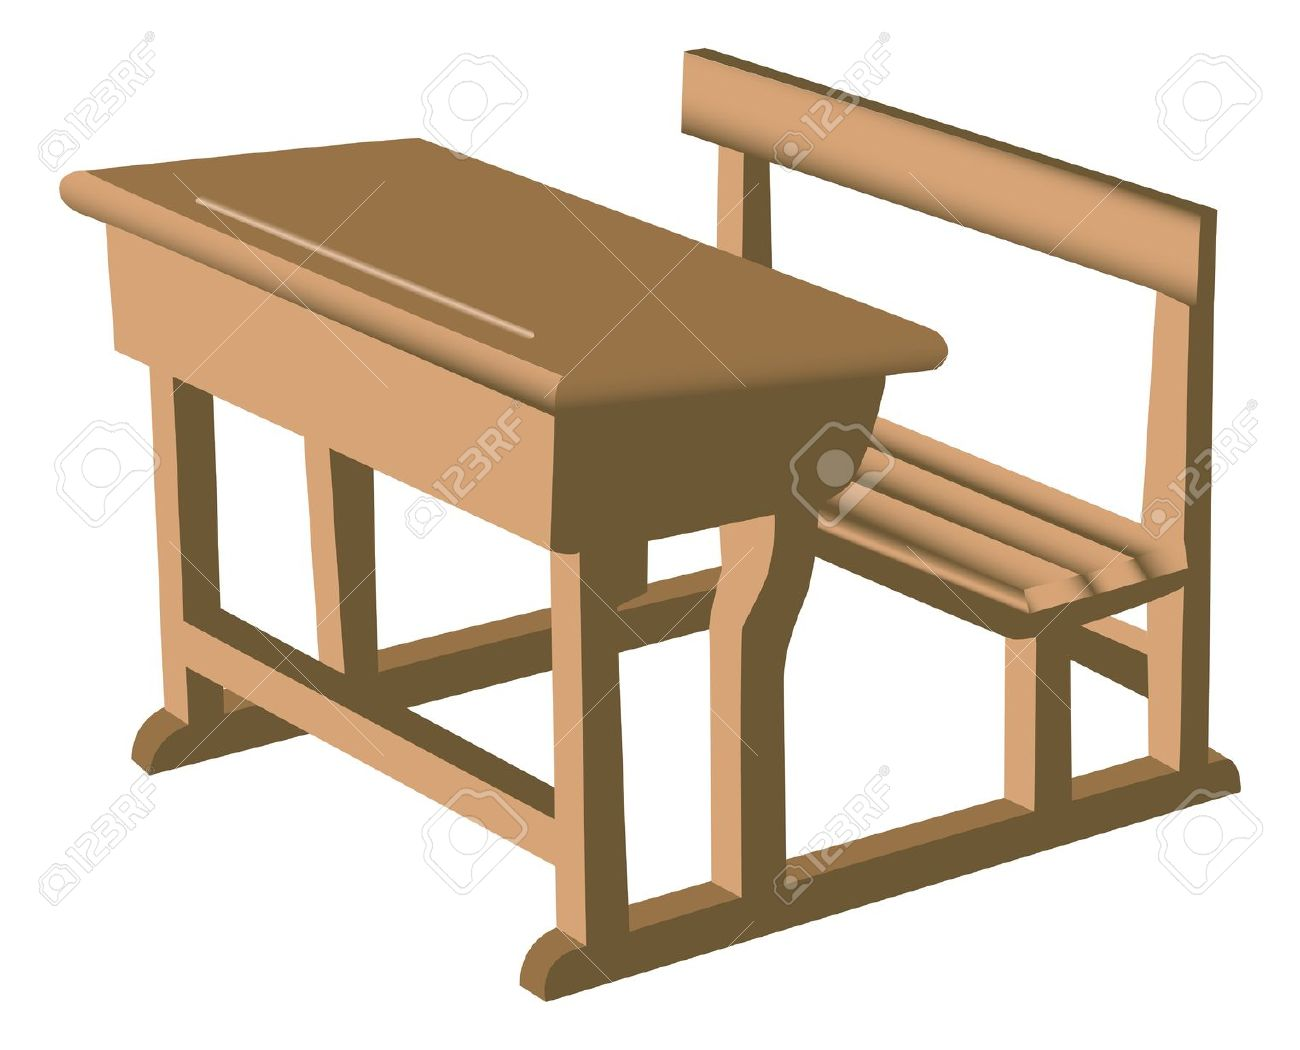 Furniture clipart school. Wood bench free collection